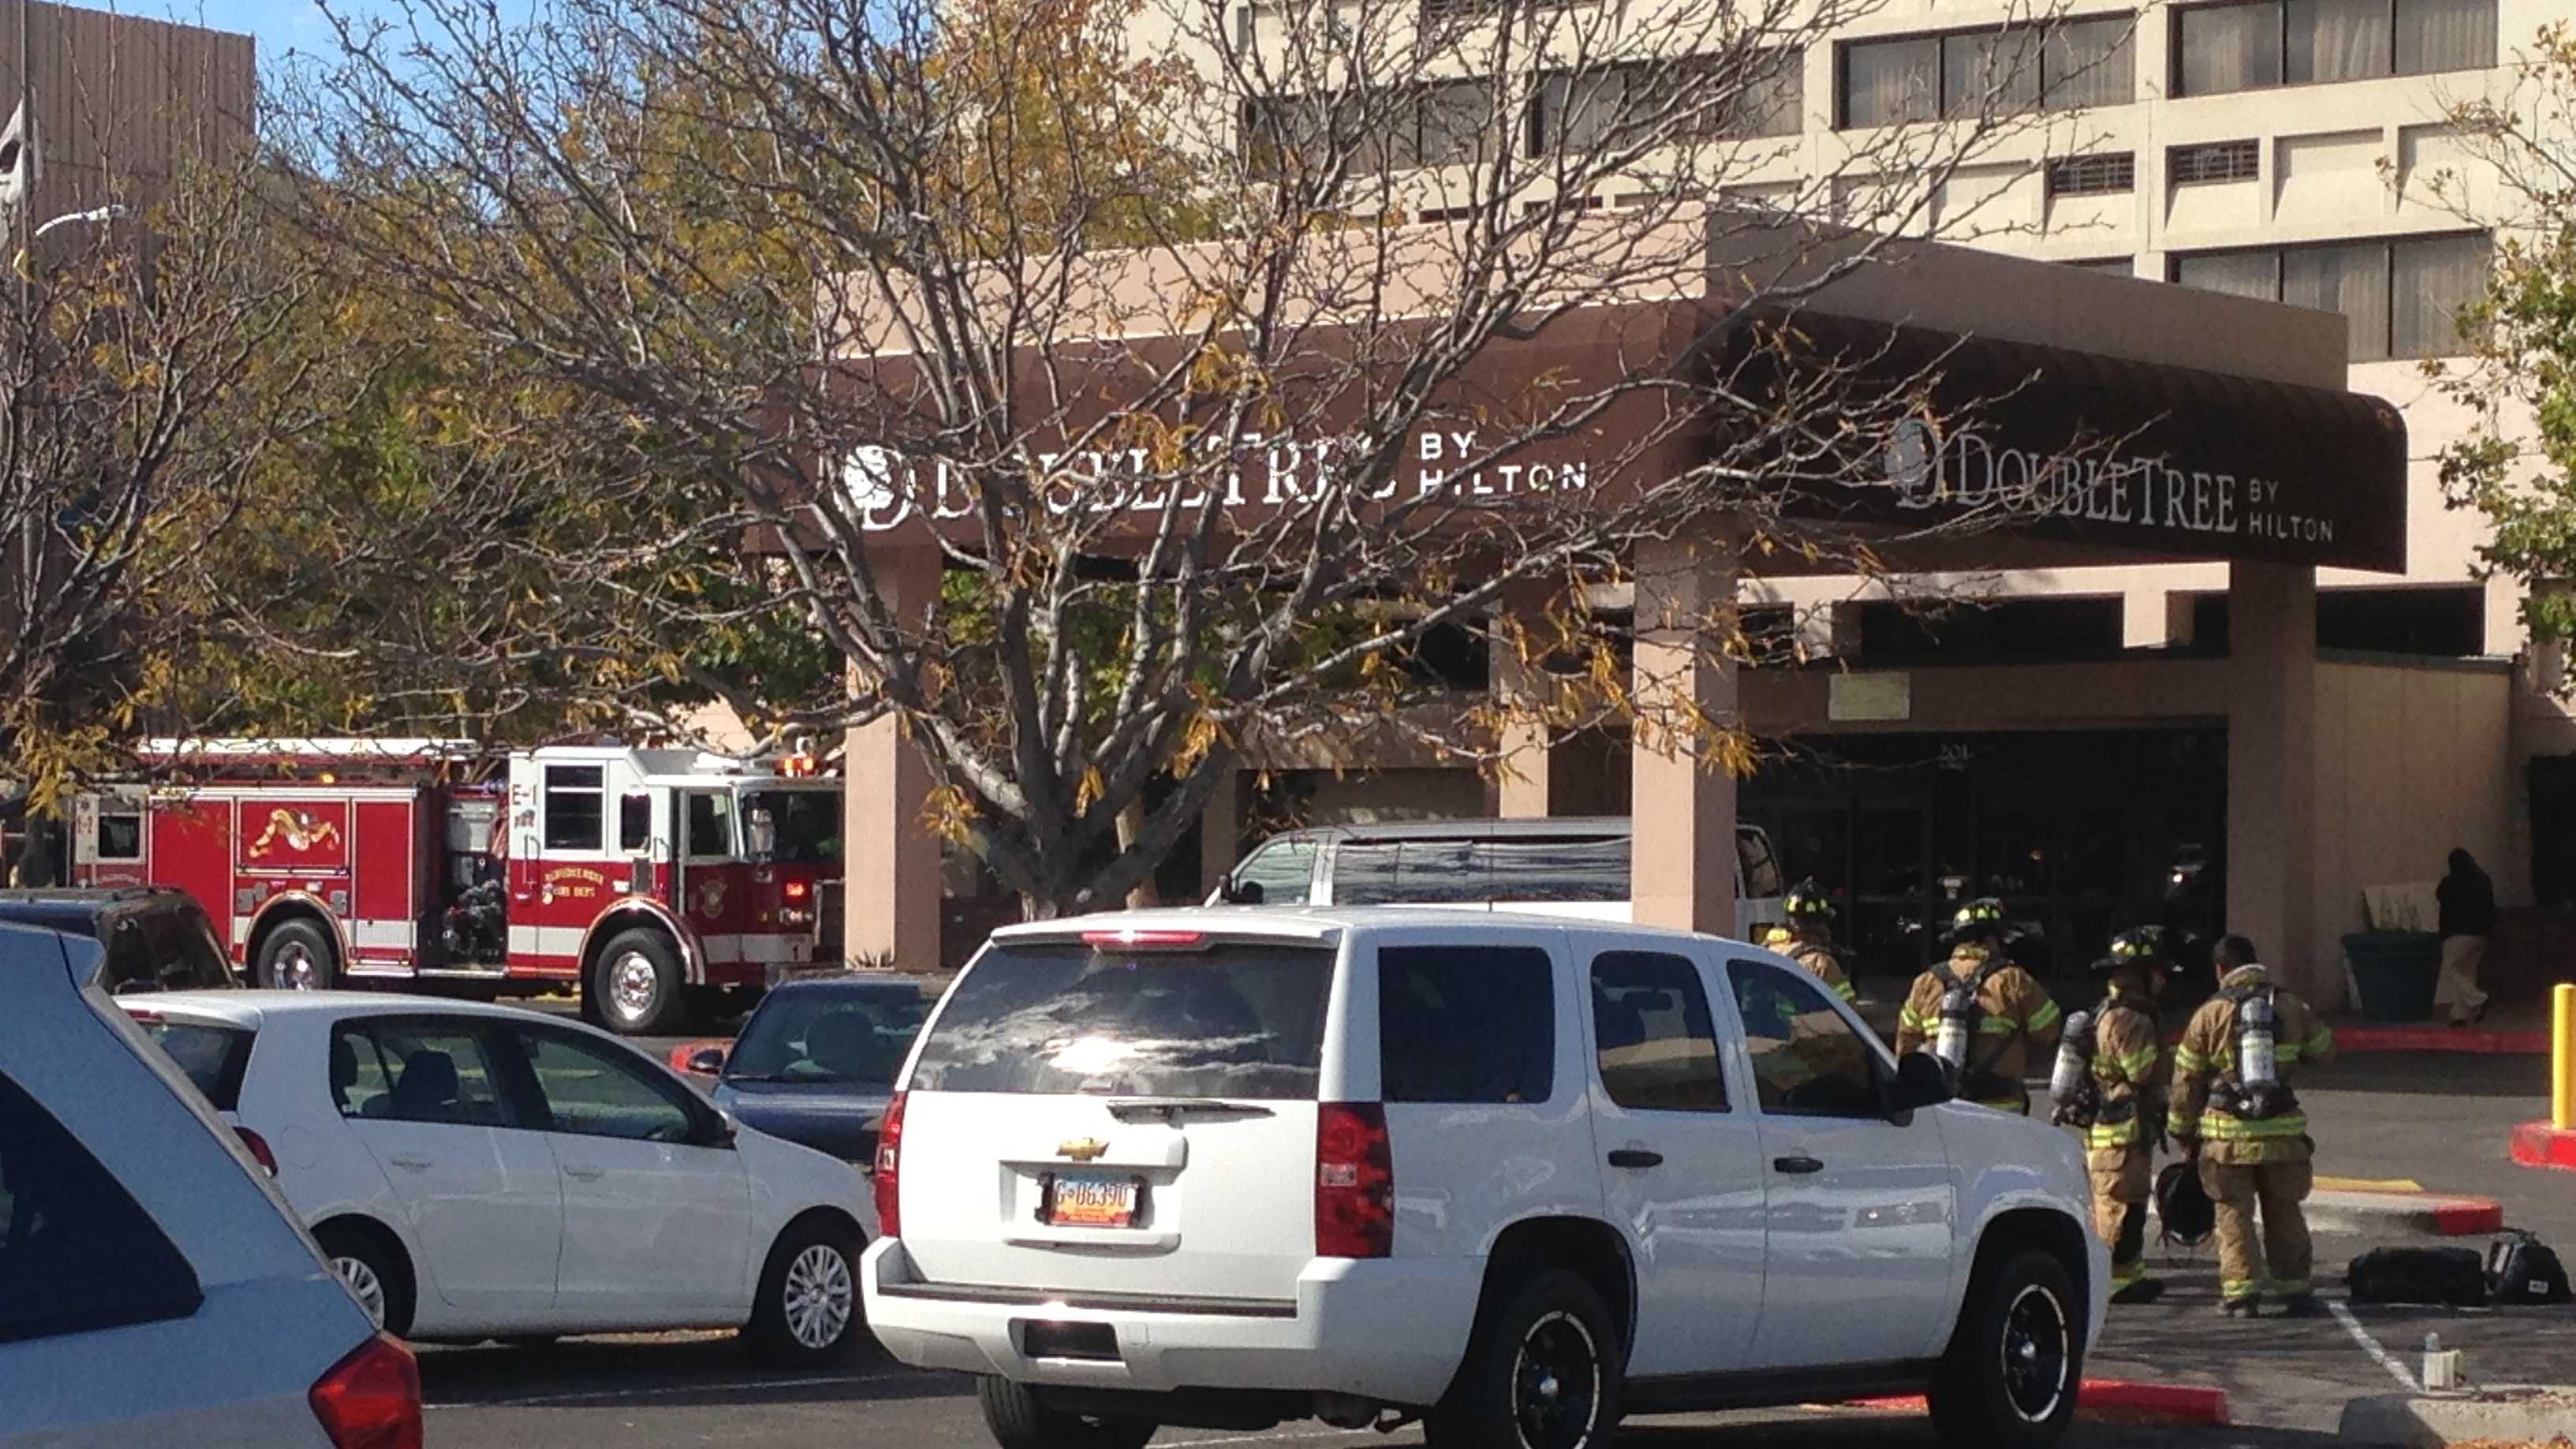 A fire broke out Wednesday on the 11th floor of the Double Tree Hotel